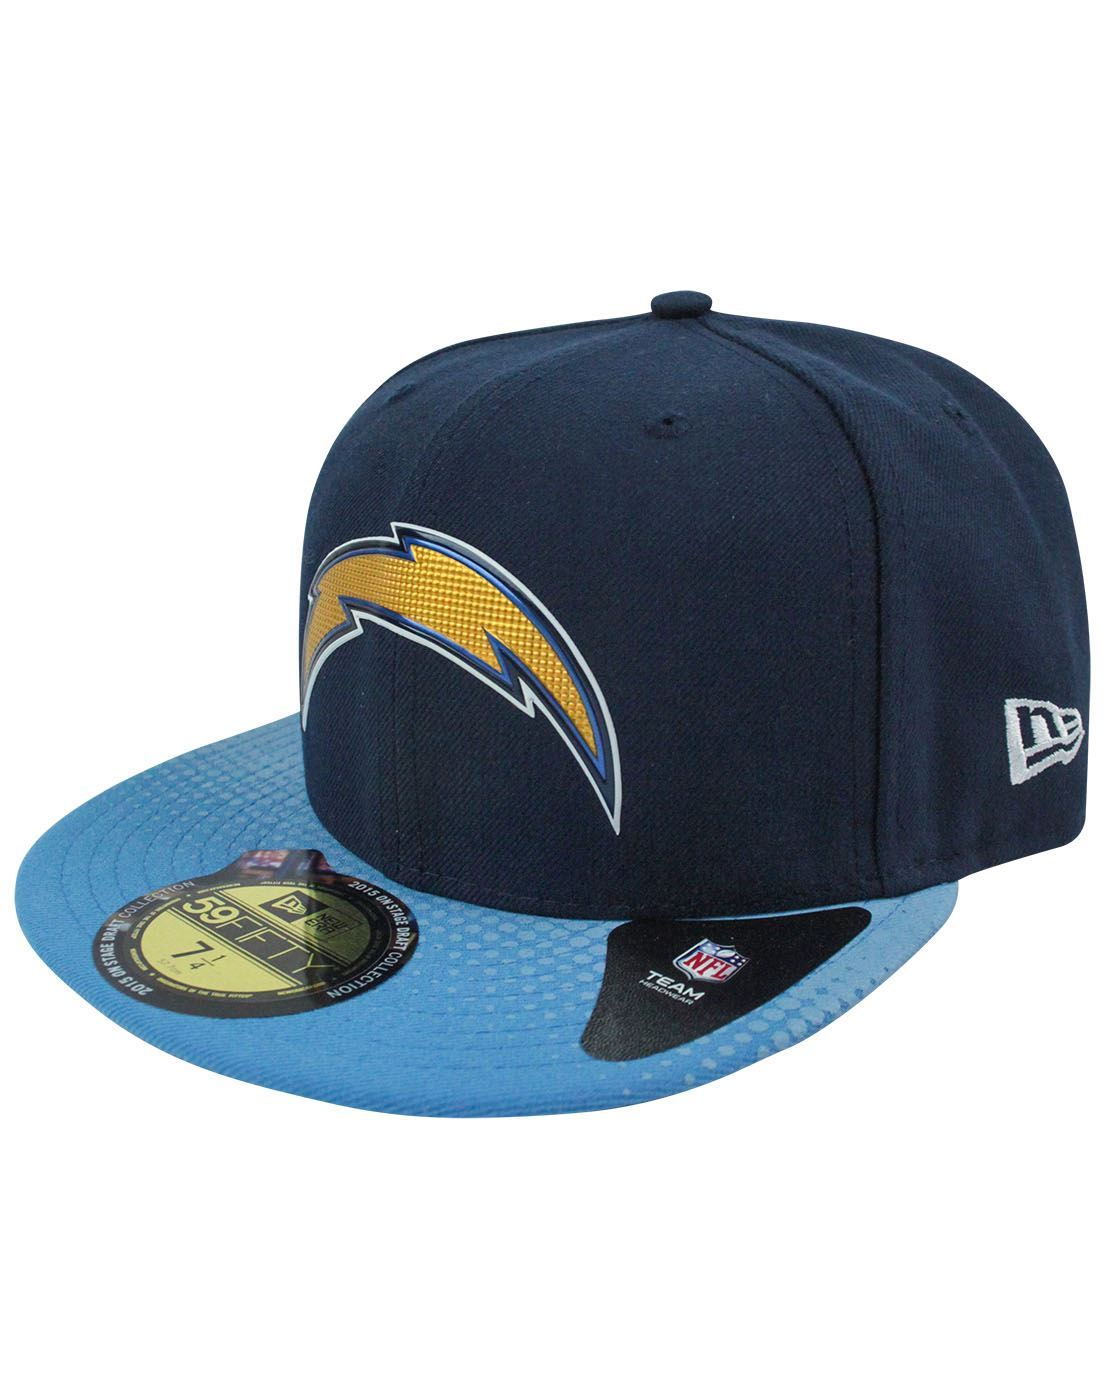 New Era 59Fifty NFL San Diego Chargers Draft Cap – Vanilla Underground 77f2559bd